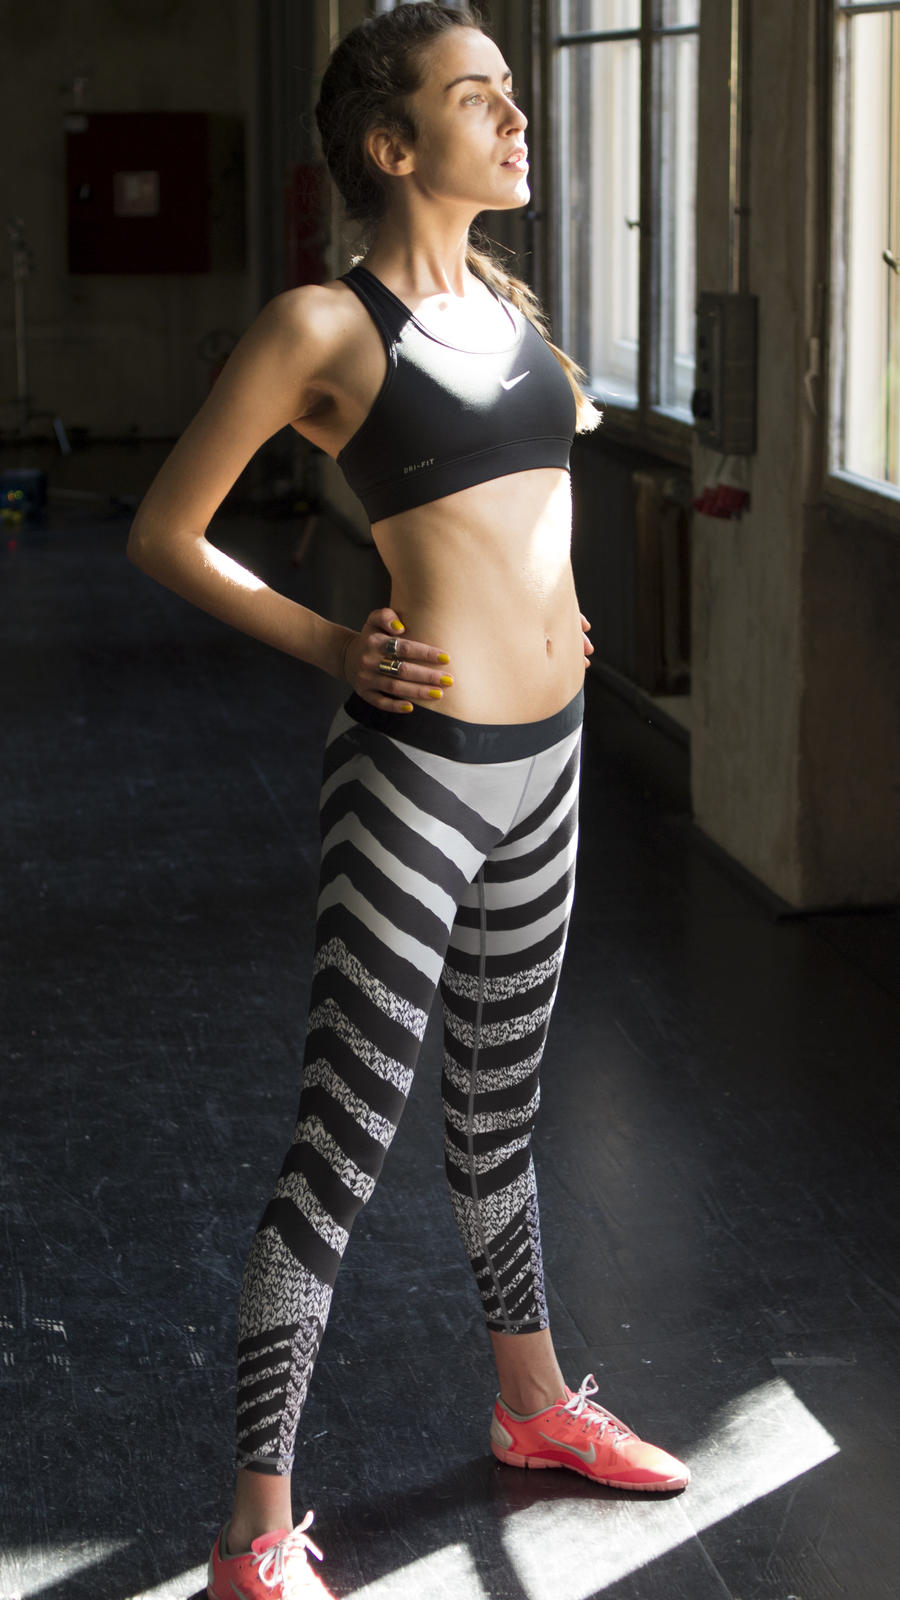 Show Your Stripes with the Zebra Knit Nike Women's Tight